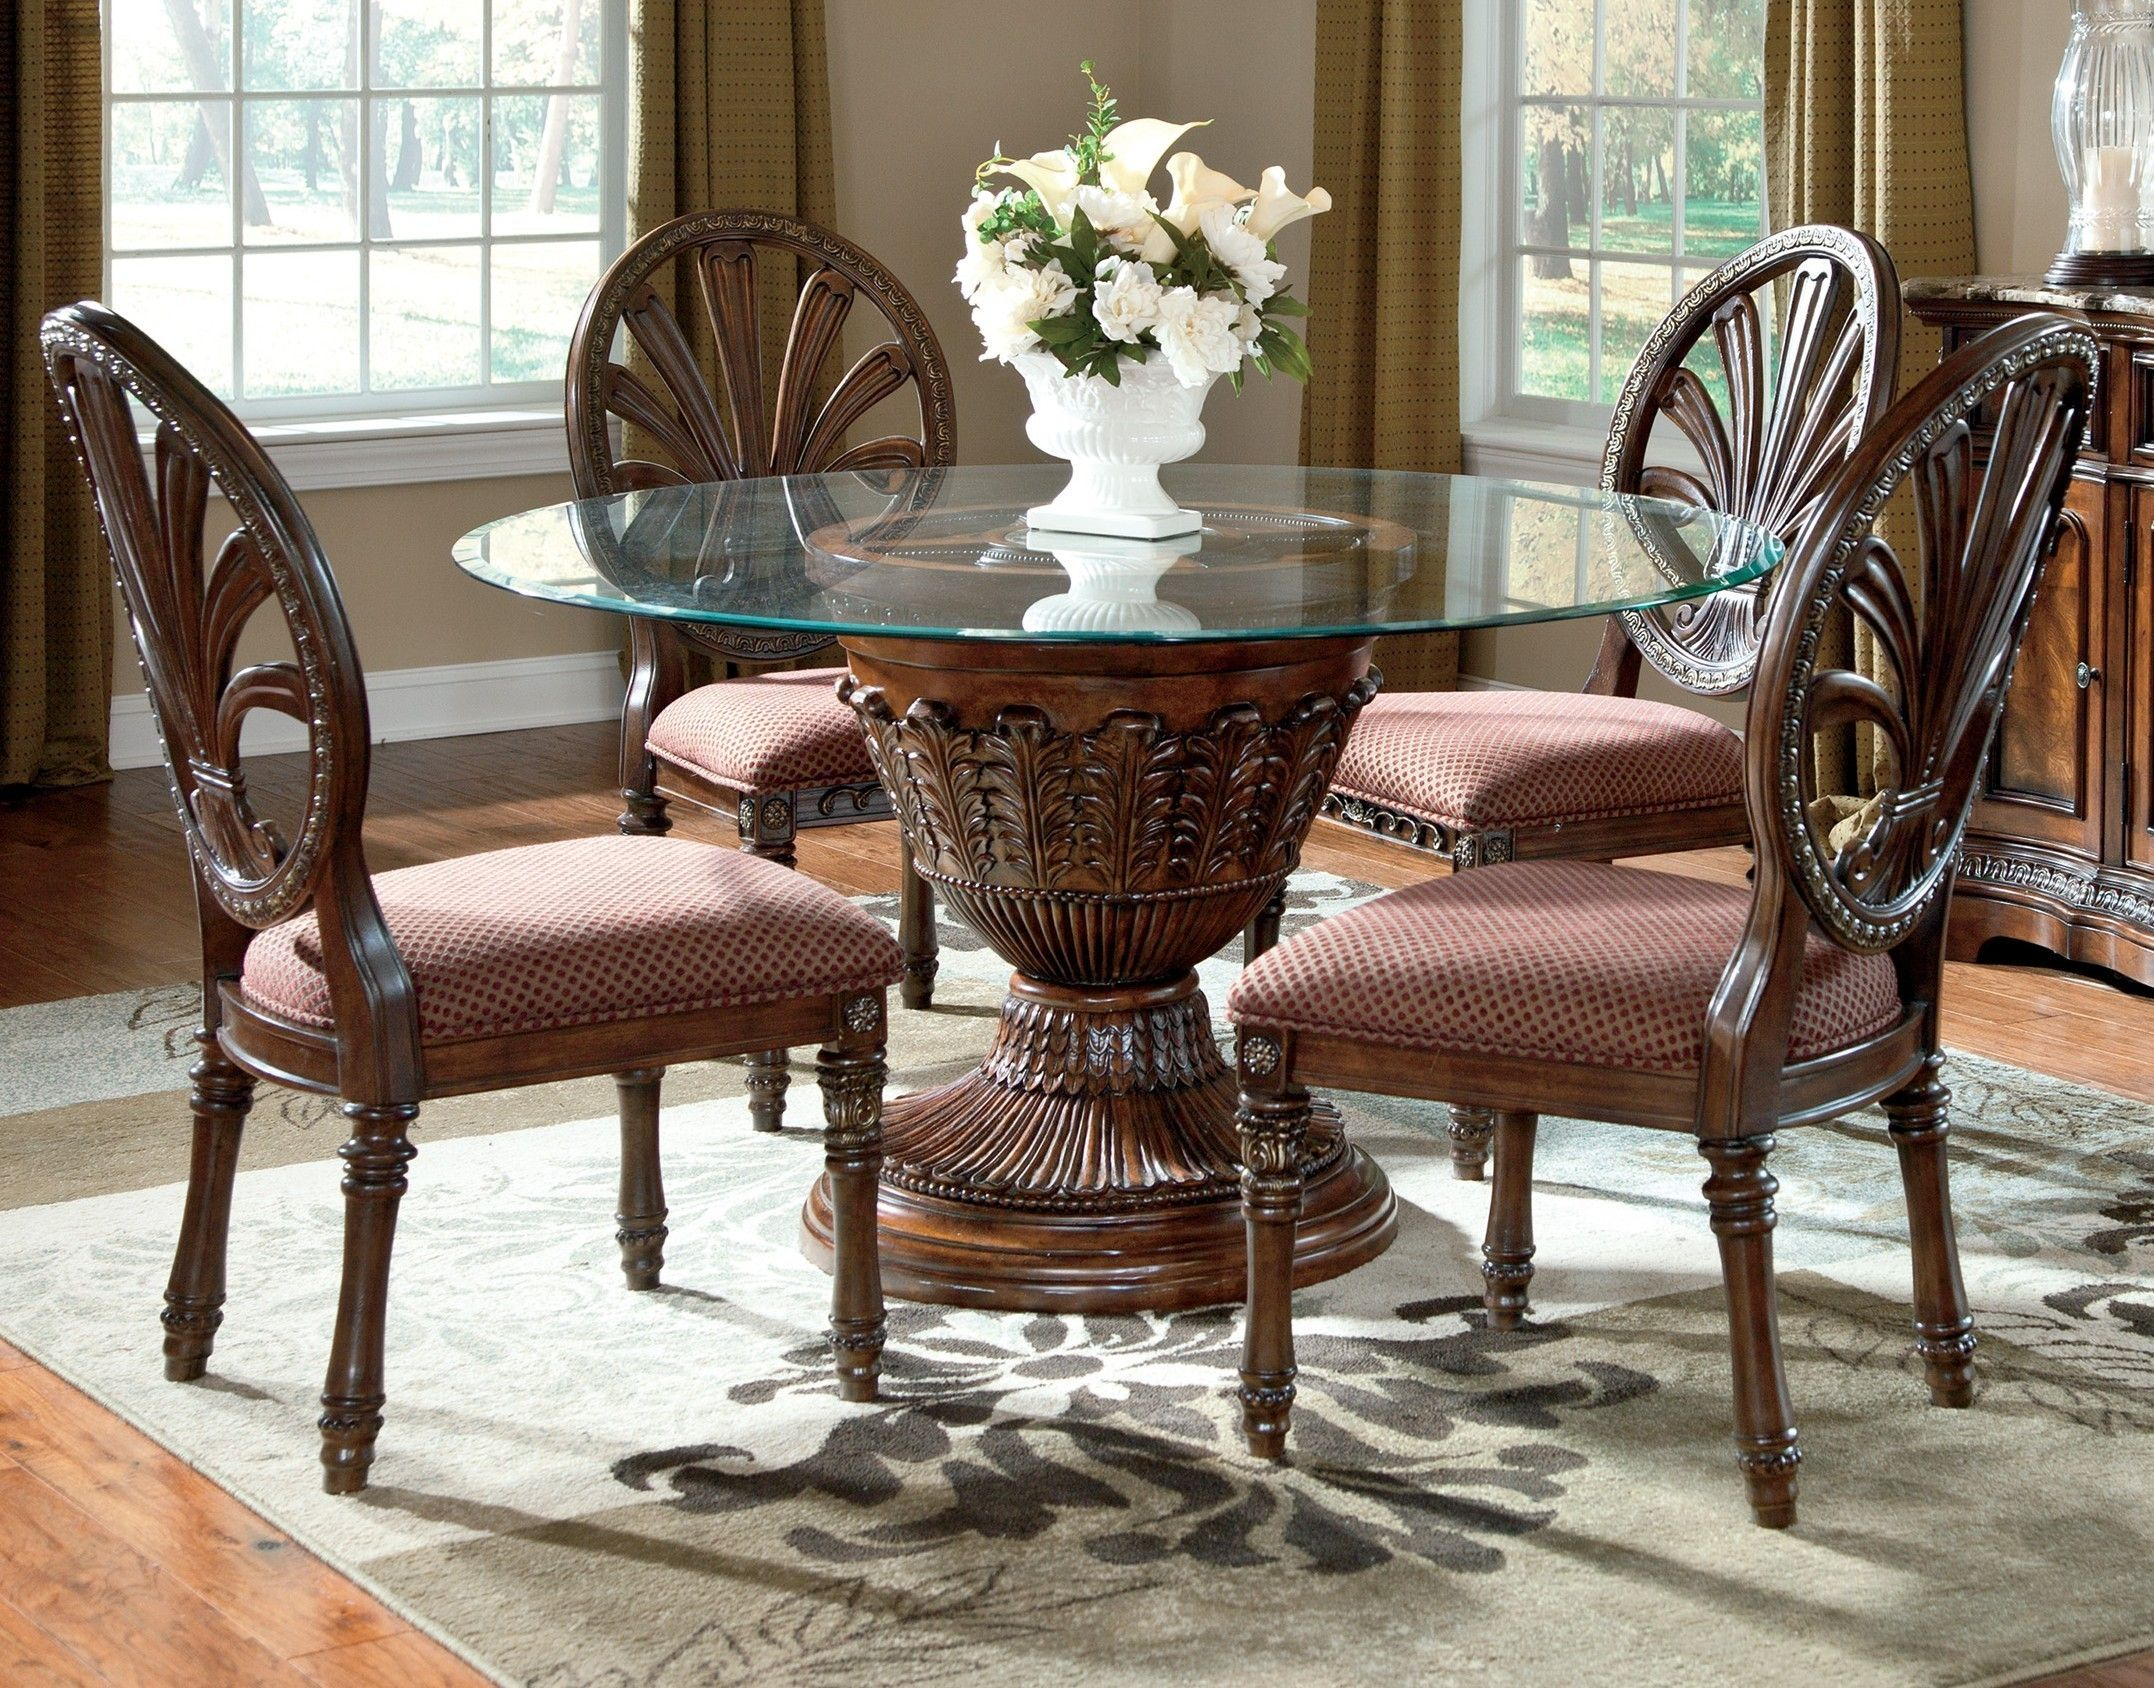 Marvelous Ashley Furniture Dining Room Chairs   Home Furniture Design Part 19